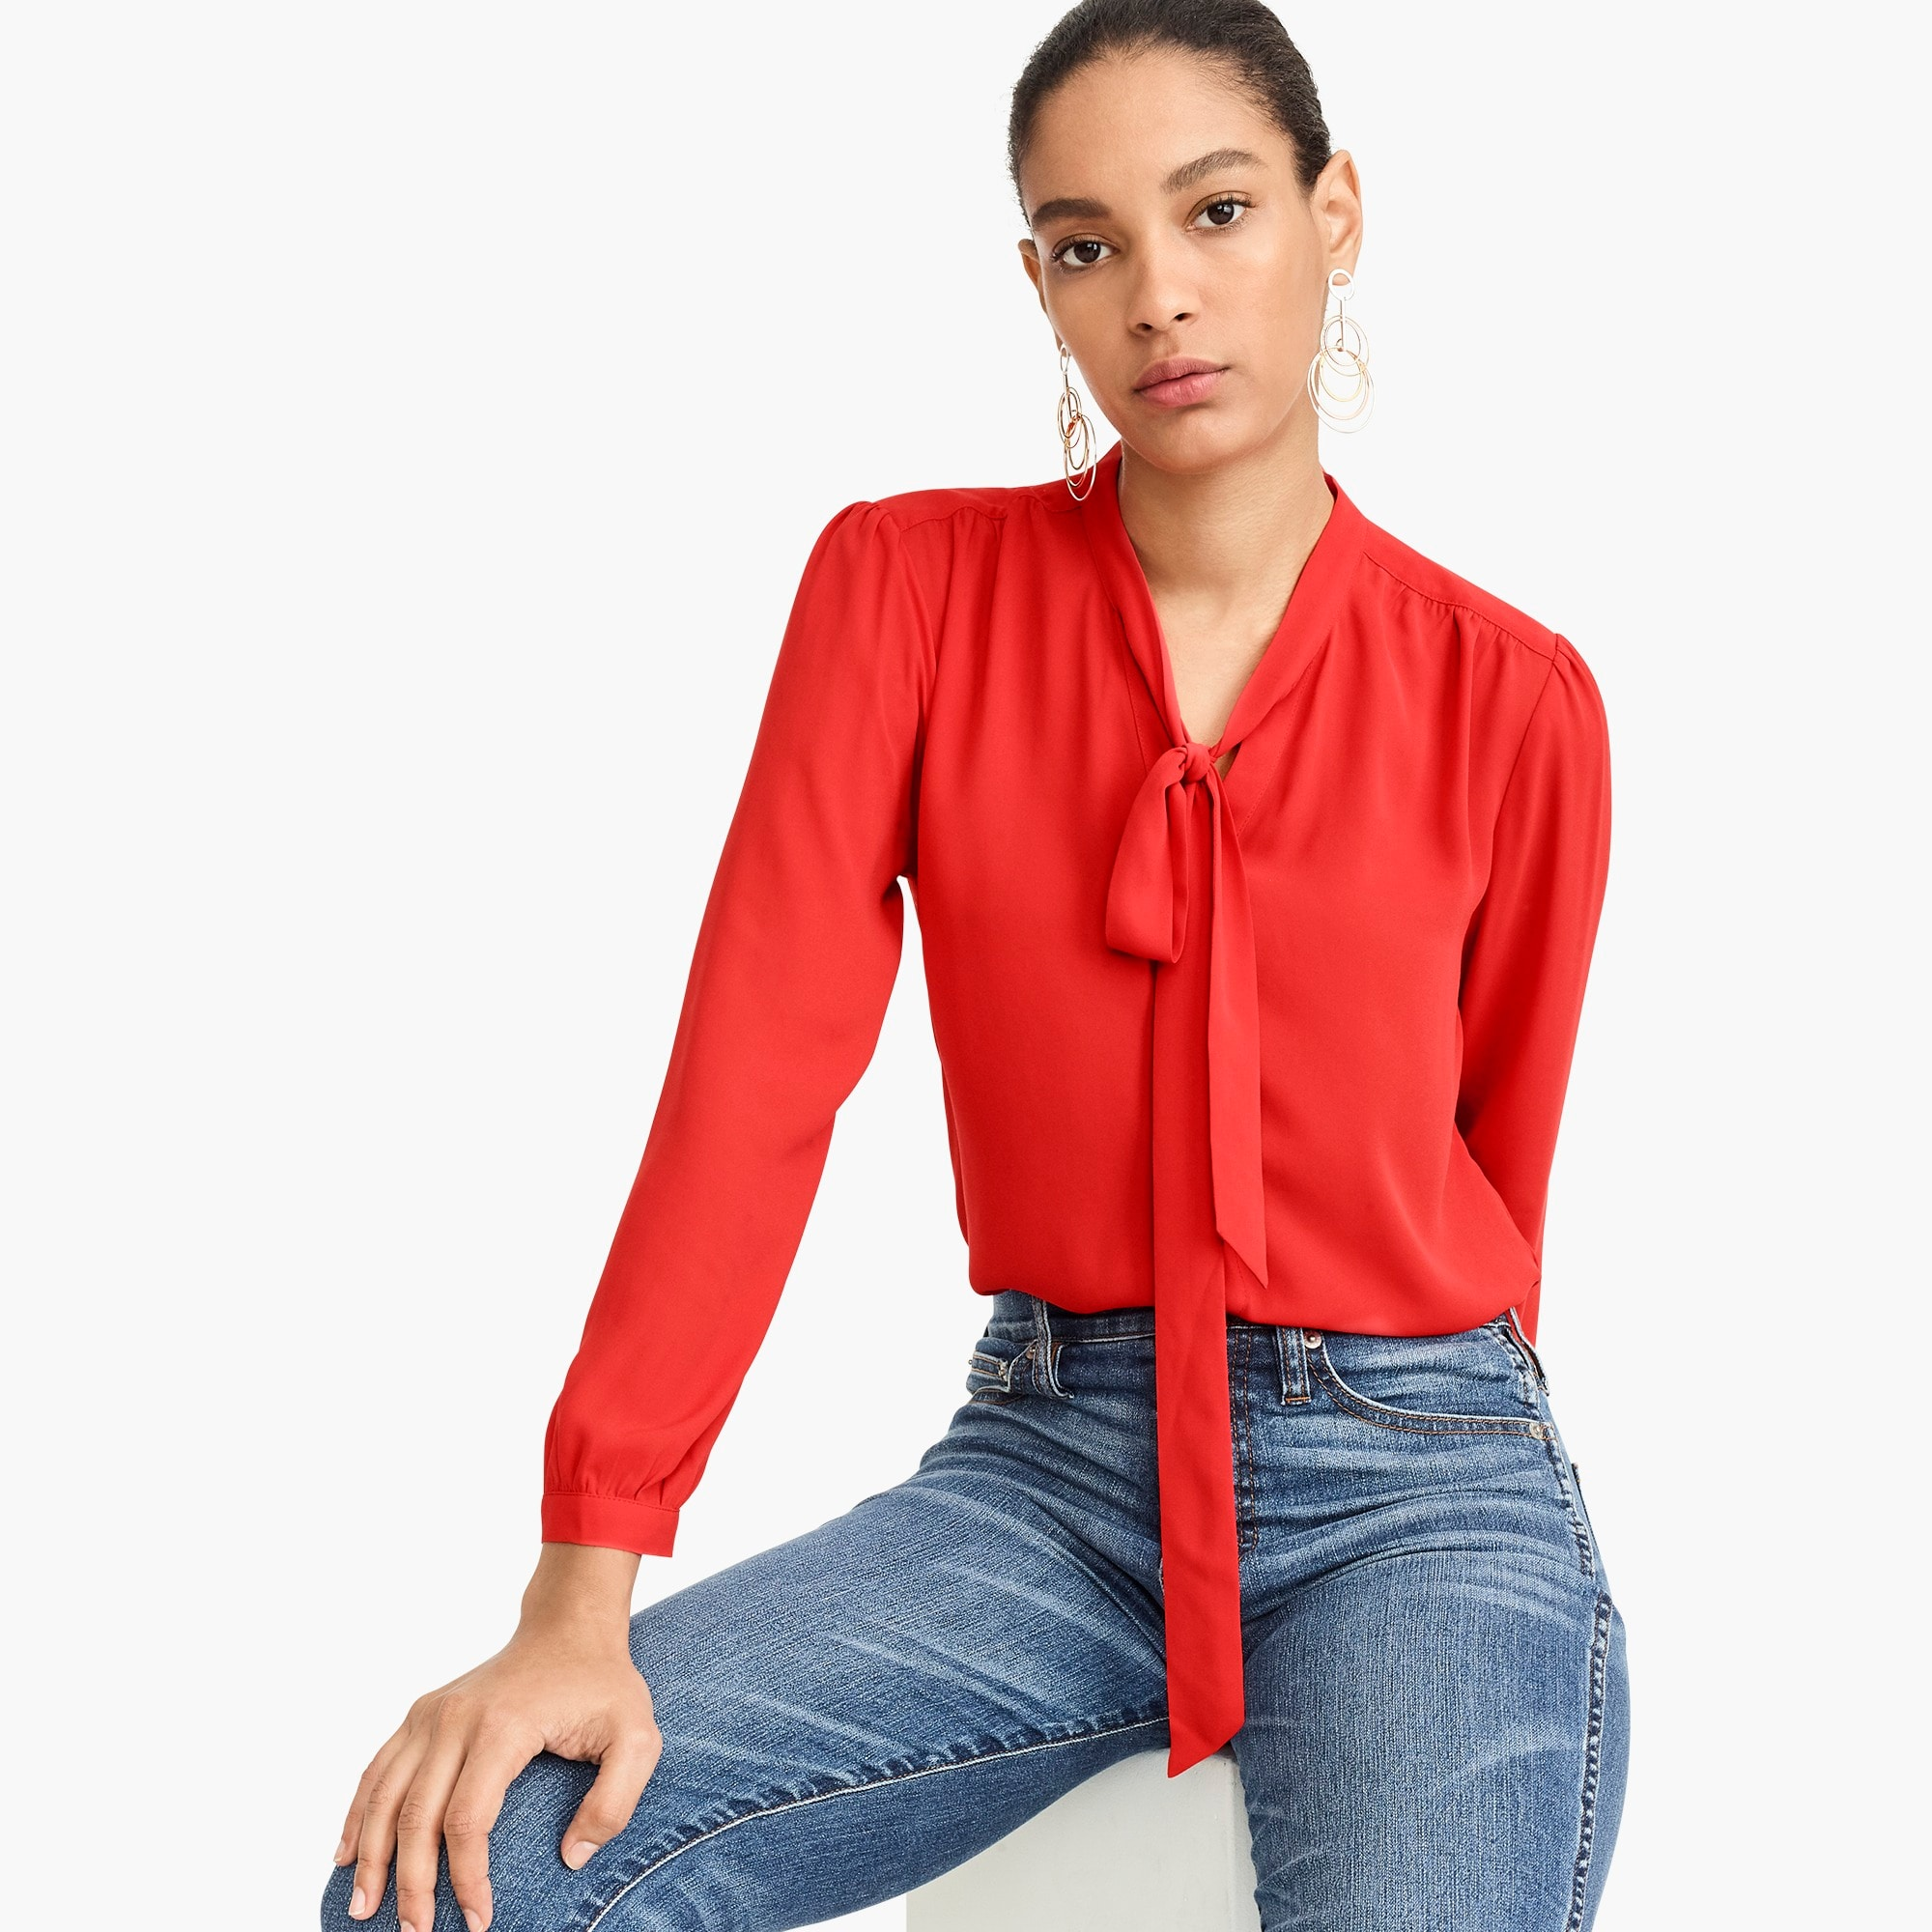 tie-neck button-up shirt : women blouse